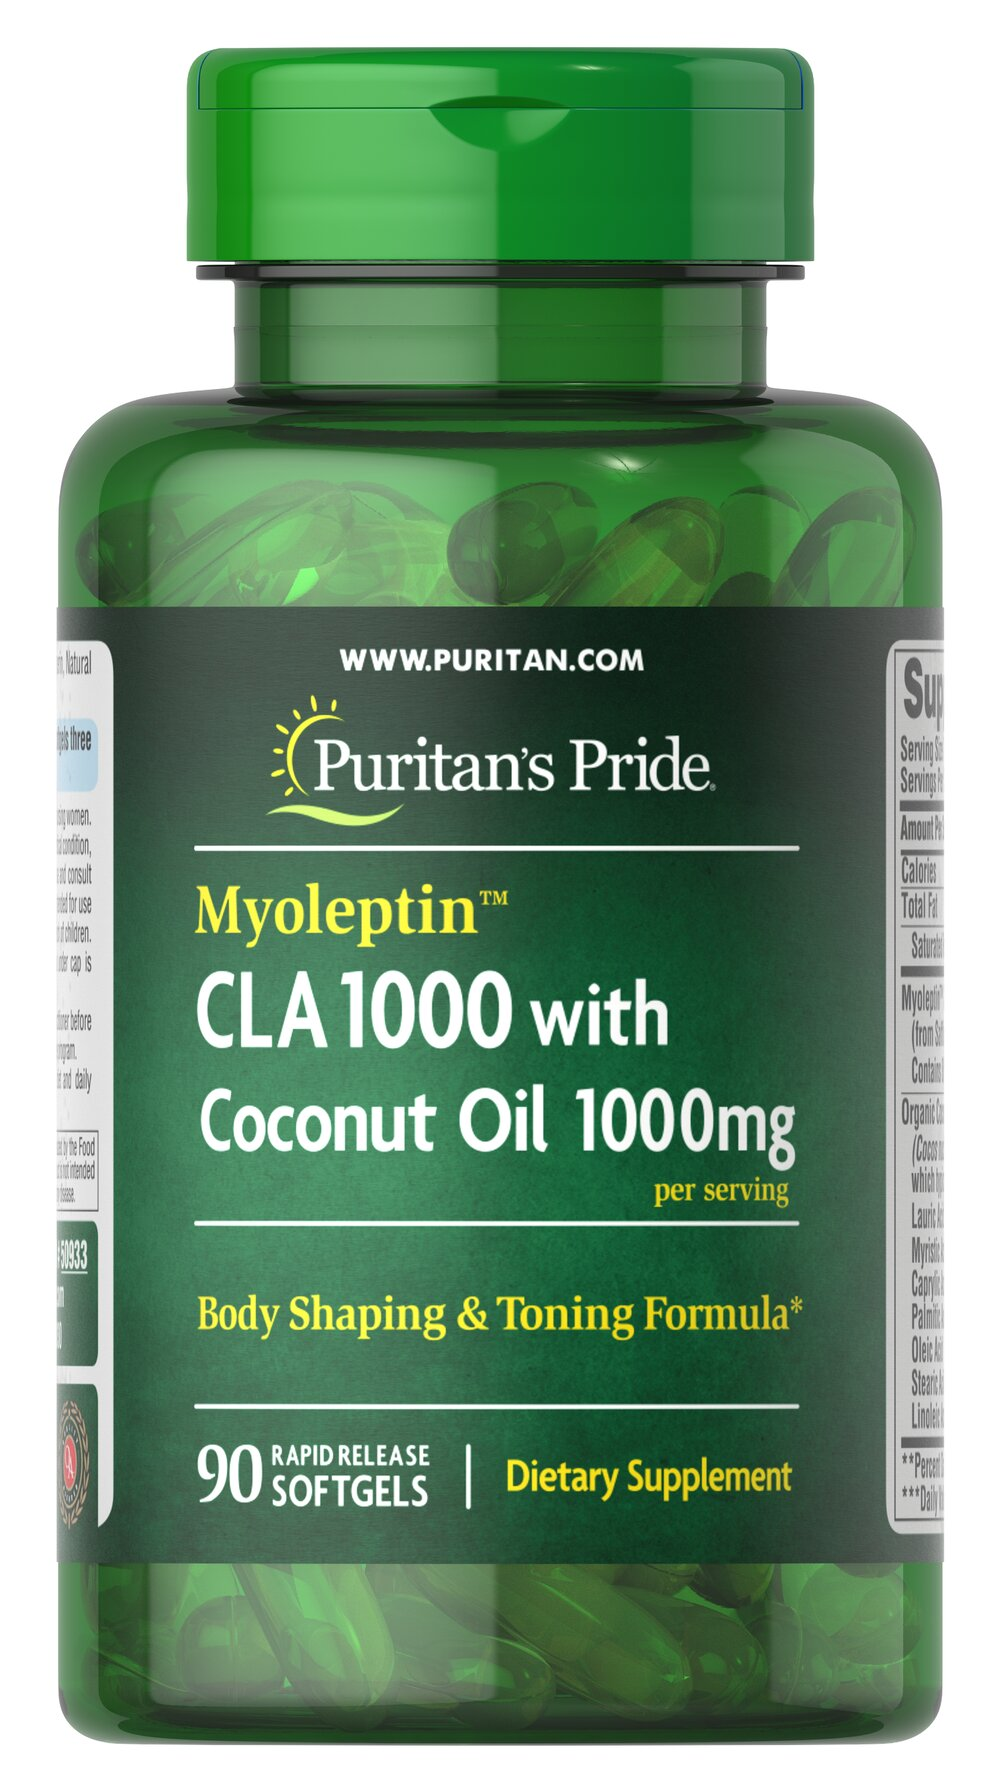 "Myoleptin™ CLA 1000 with Coconut Oil <ul><li><span style=""font-family:'Arial','sans-serif';color:#141414;"">Myoleptin™ CLA is a form of Conjugated Linoleic Acid produced from safflower oil</span><span style=""font-family:'Arial','sans-serif';"">.</span></li><li><span style=""font-family:'Arial','sans-serif';color:#141414;"">Supports a healthy body composition.**</span"